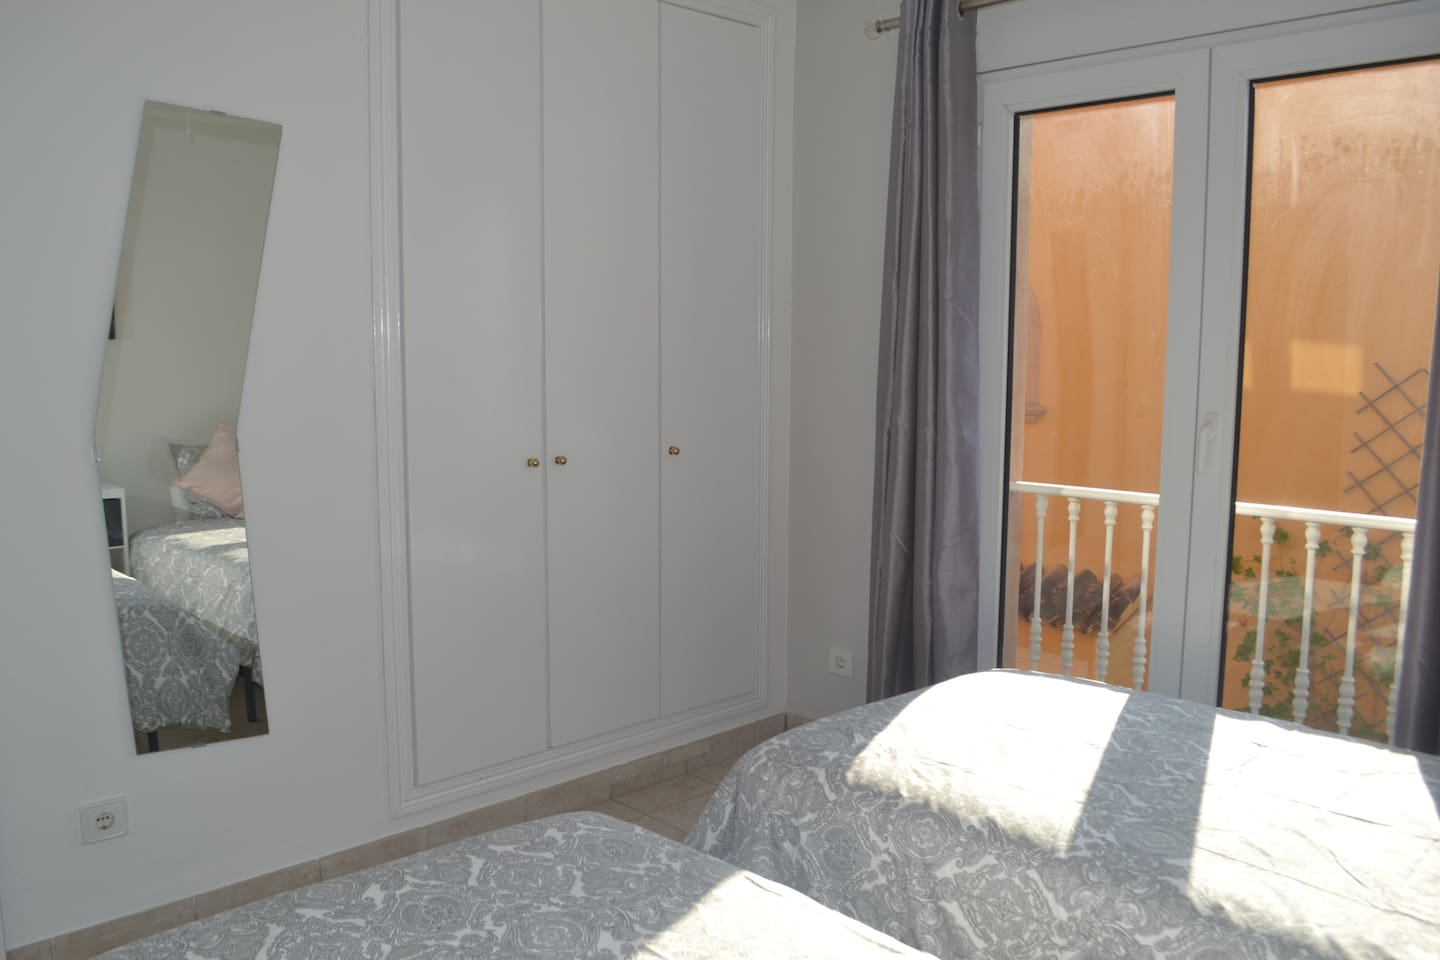 bedroom 2 with 3 wardrobes and twin beds